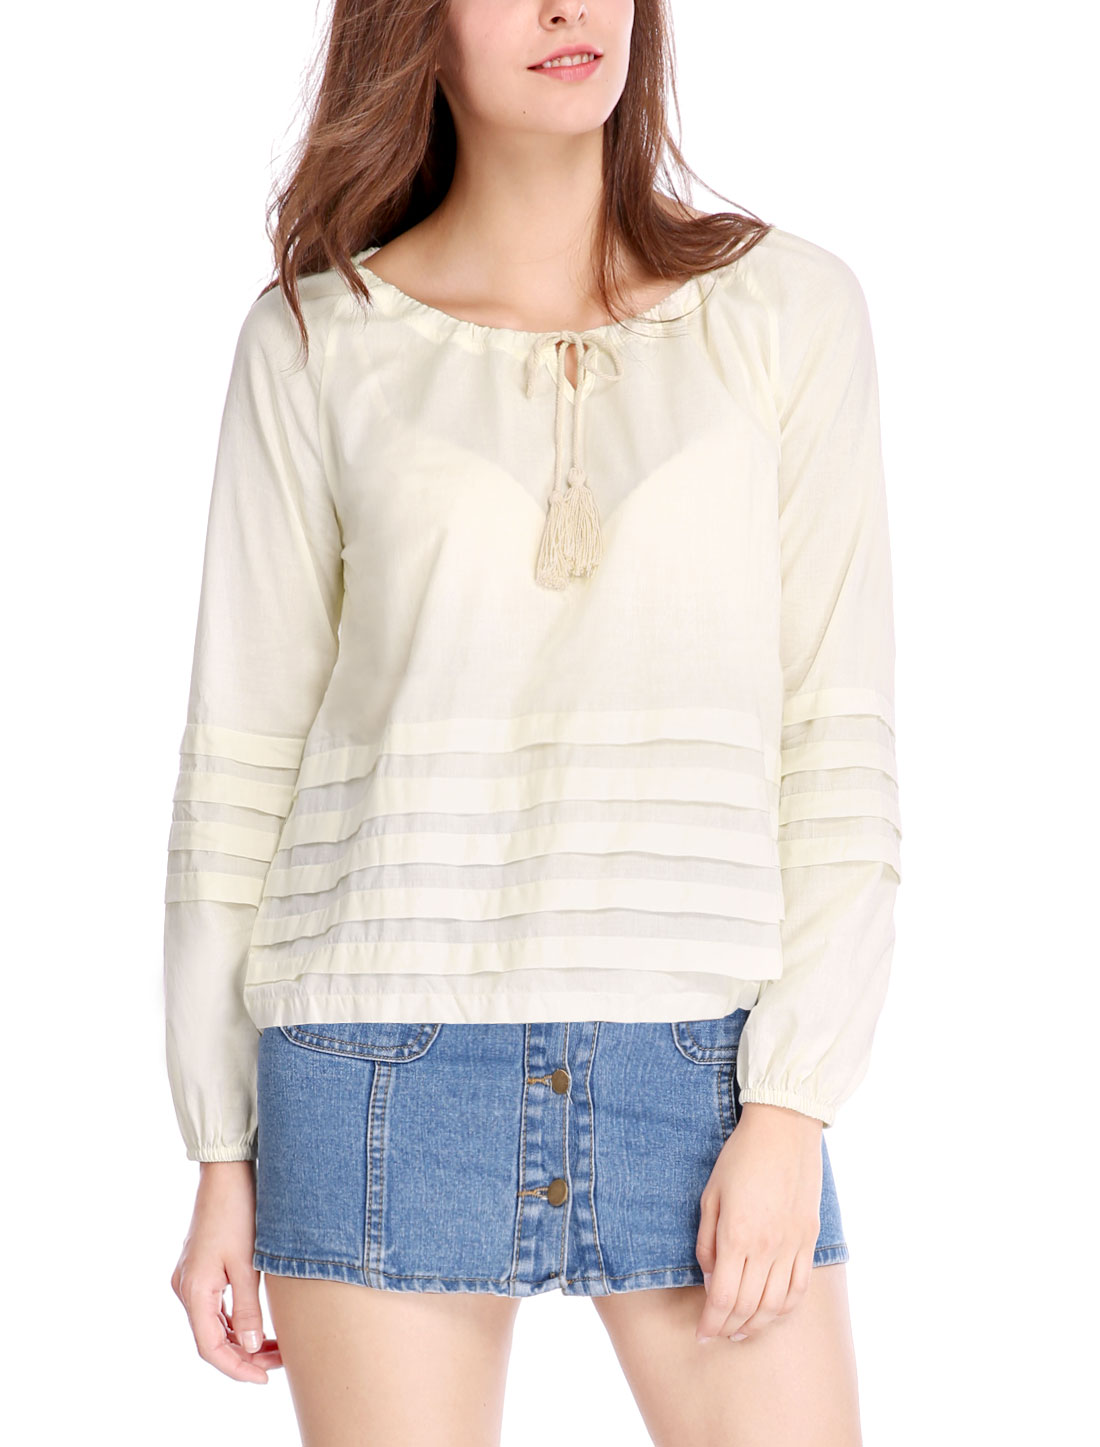 Women Tassel Tie Front Shutter Pleats Long Sleeves Blouse Ivory XS